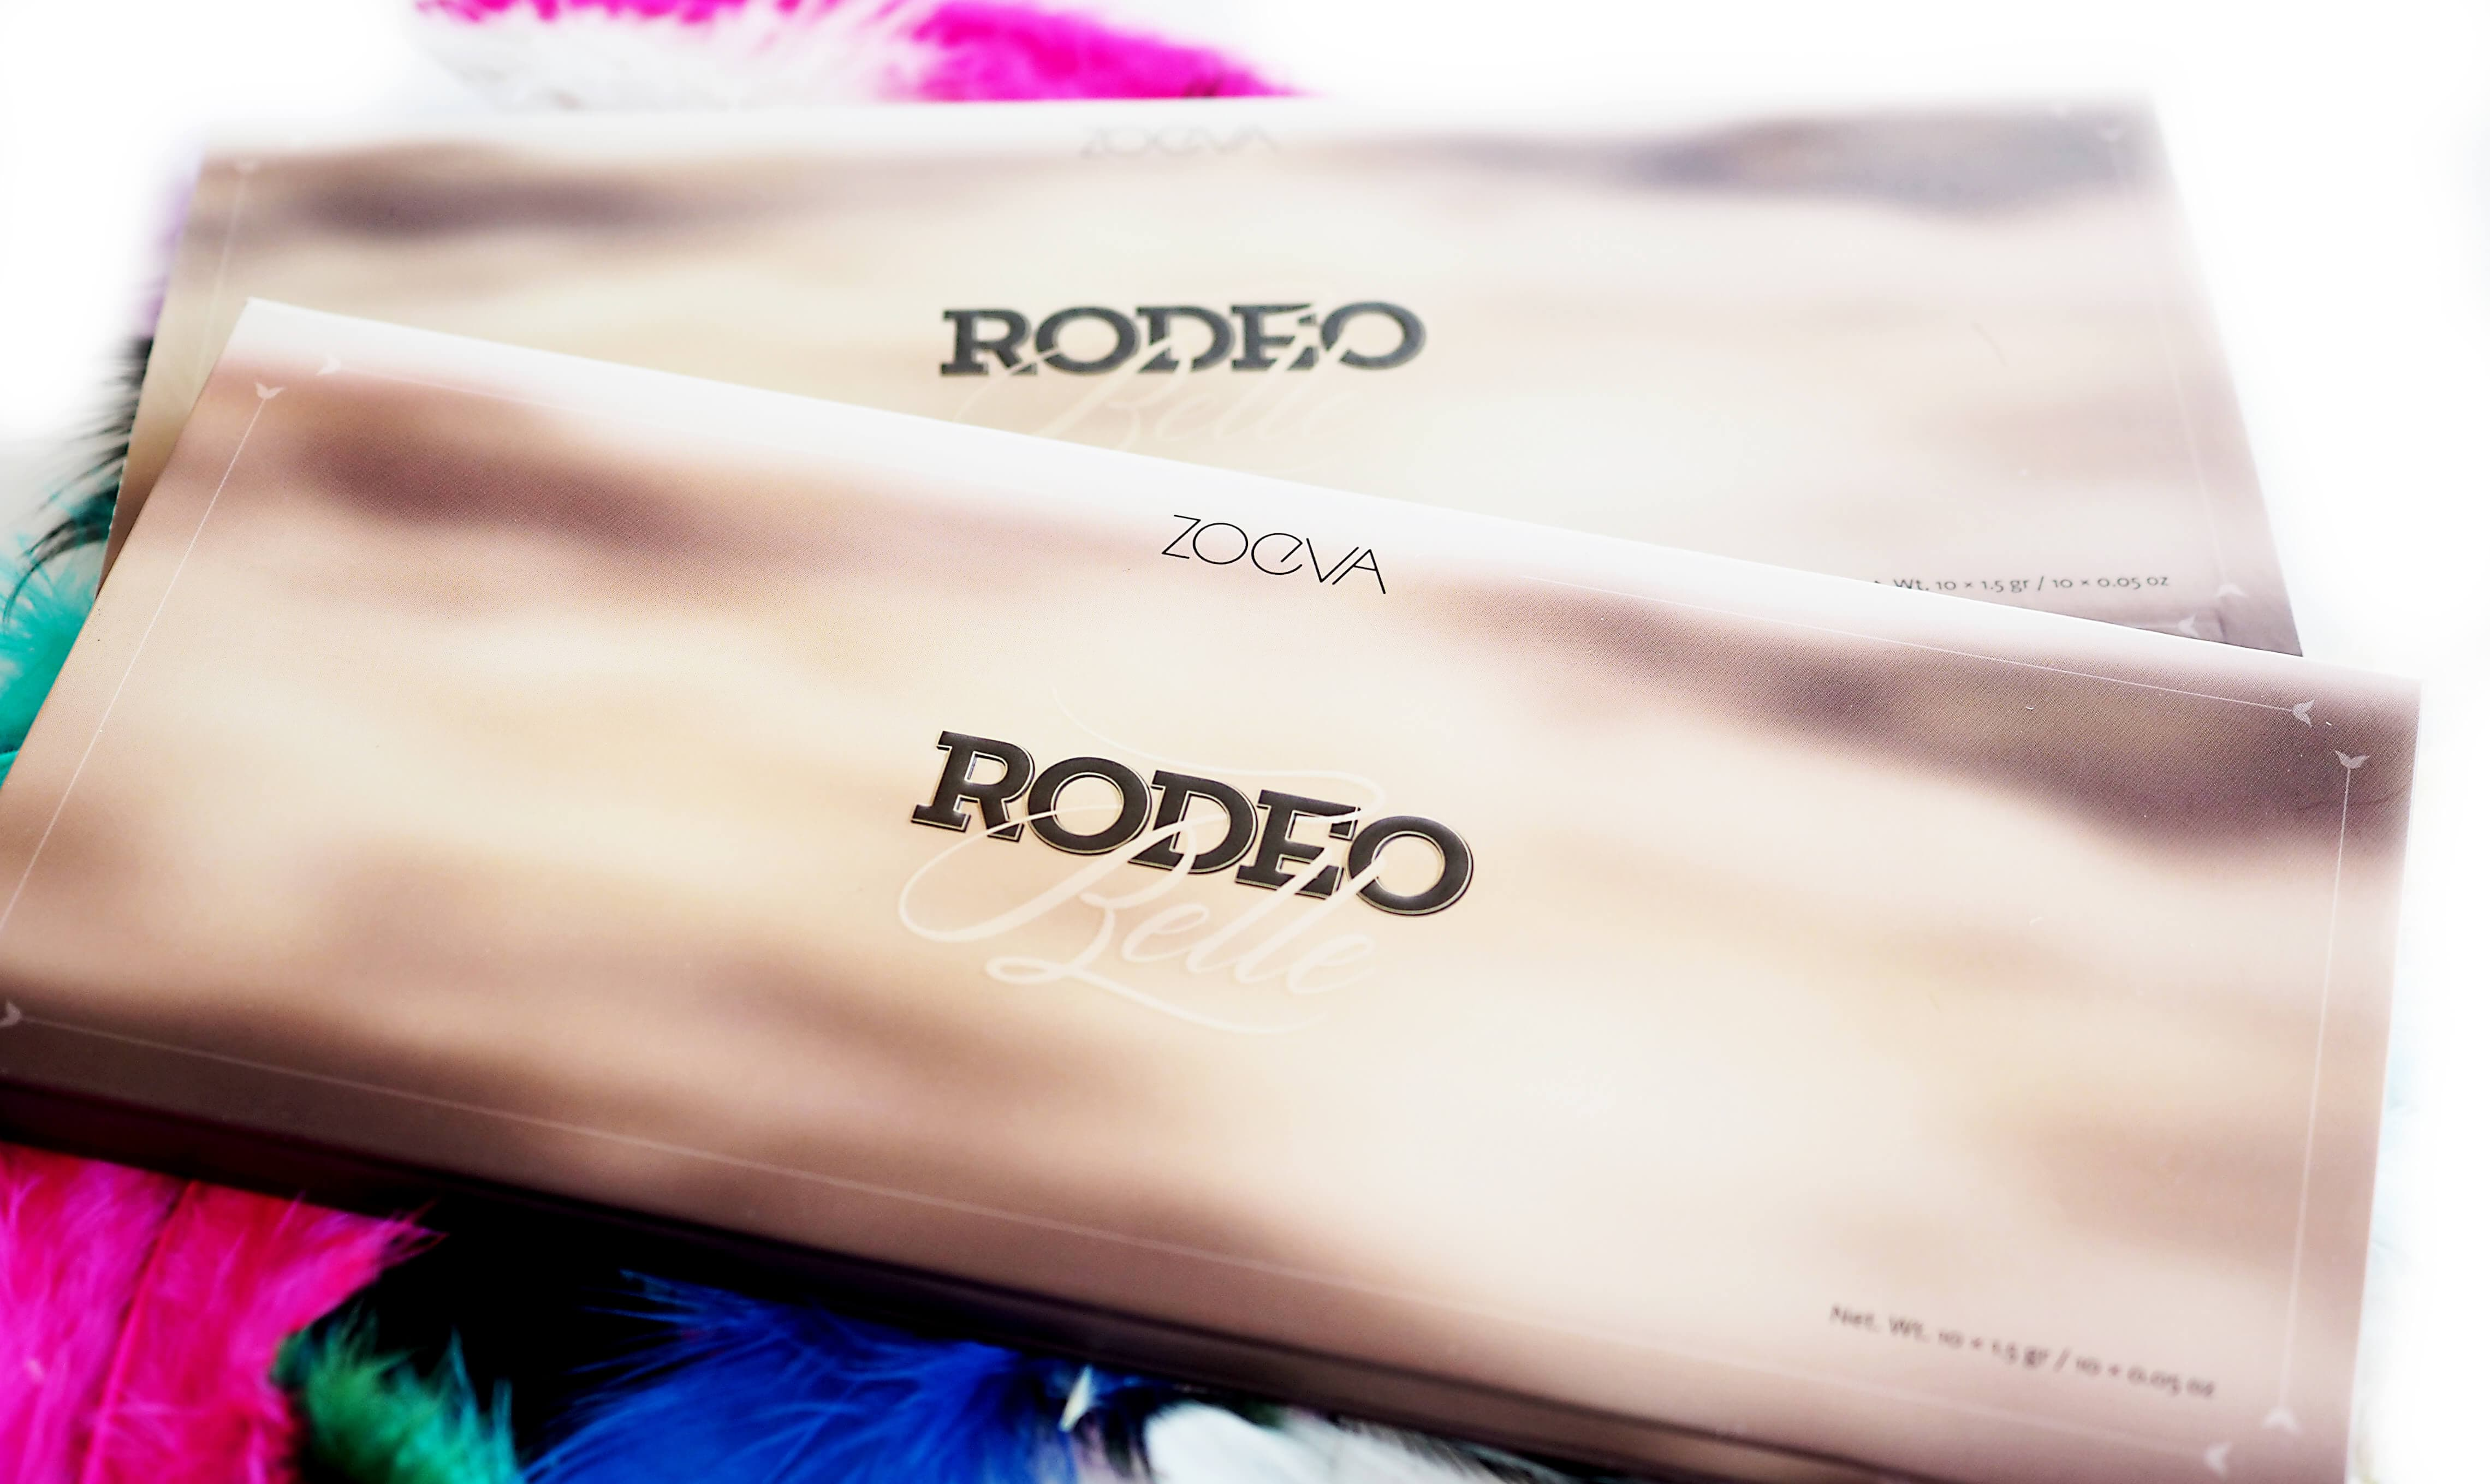 Test ZOEVA RODEO BELLE